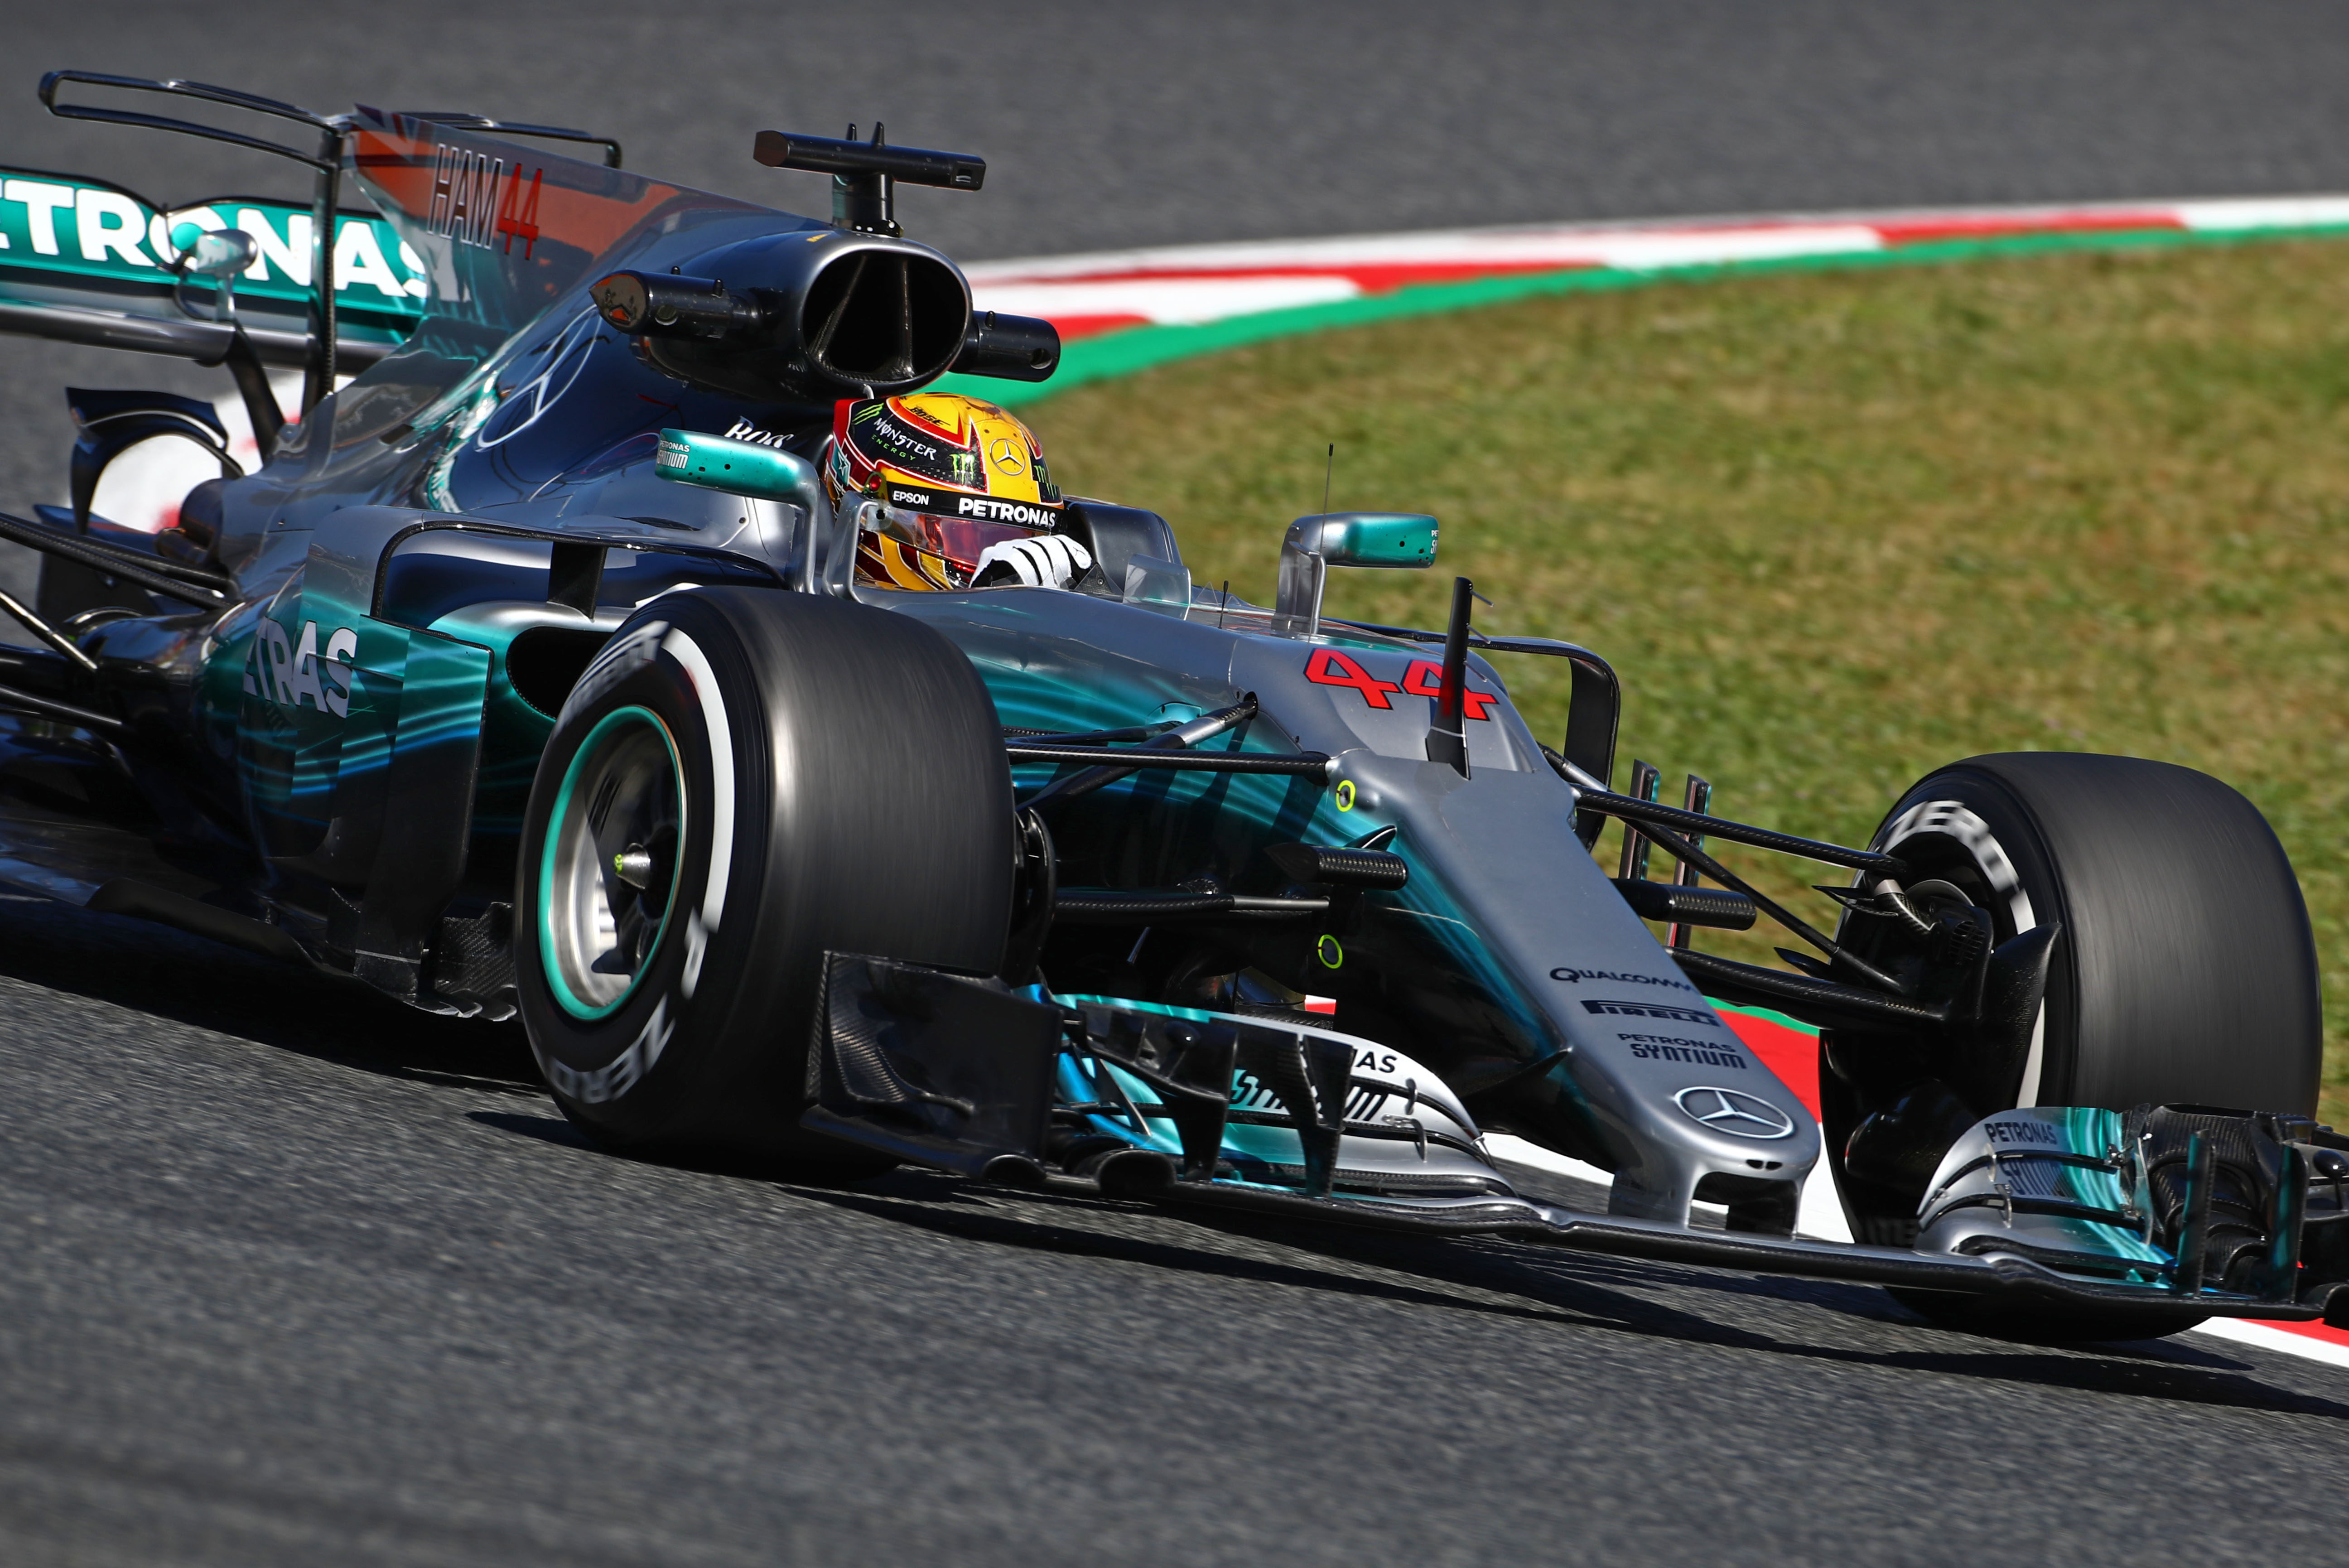 Formula One World Championship 2017, Round 5, Spannish Grand Prix, Barcelona, Spain, Friday 12 May 2017 – Lewis Hamilton (GBR) Mercedes AMG F1